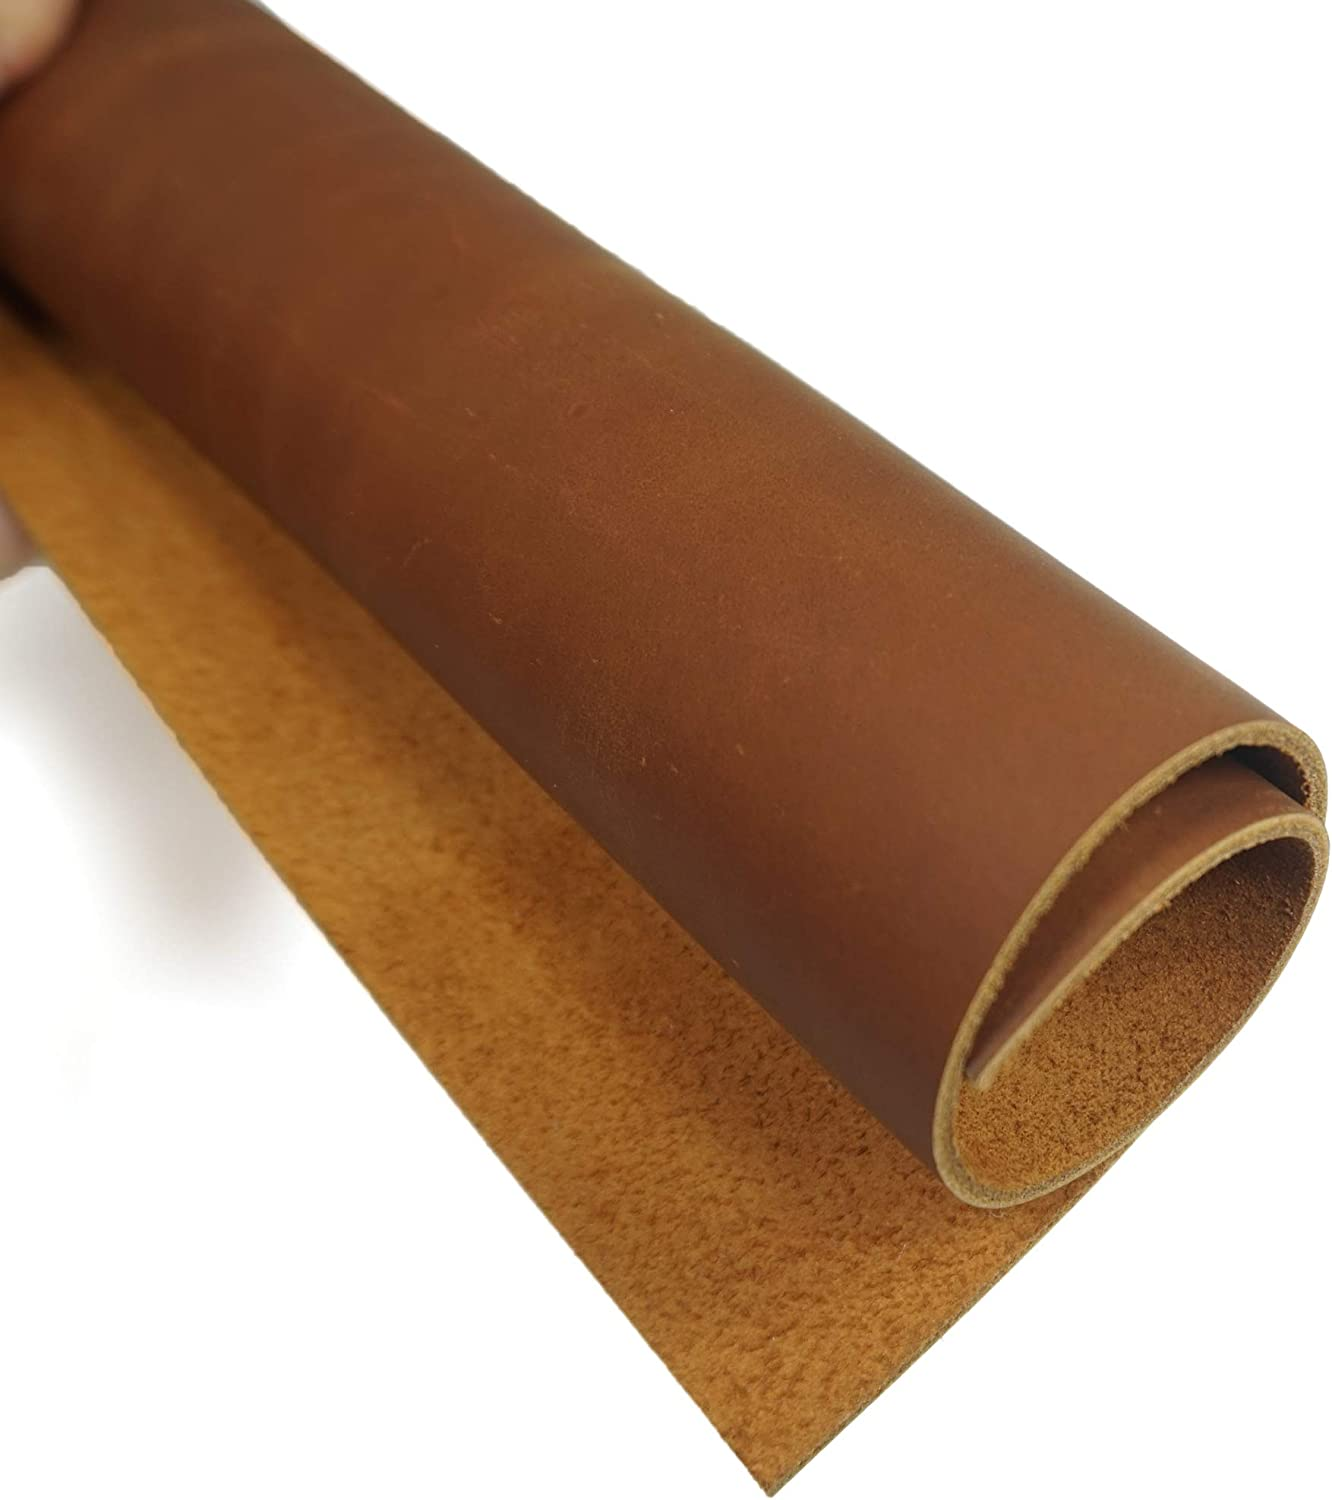 Thick Finished Full Grain Cow Hide Leather Heavy Weight Dark Brown, 10~13feet Square 10~13Square Feet 1//2 Half of A Whole Cowhide Leather for Tooling//Crafts 3.6mm-4.0mm 9-10oz